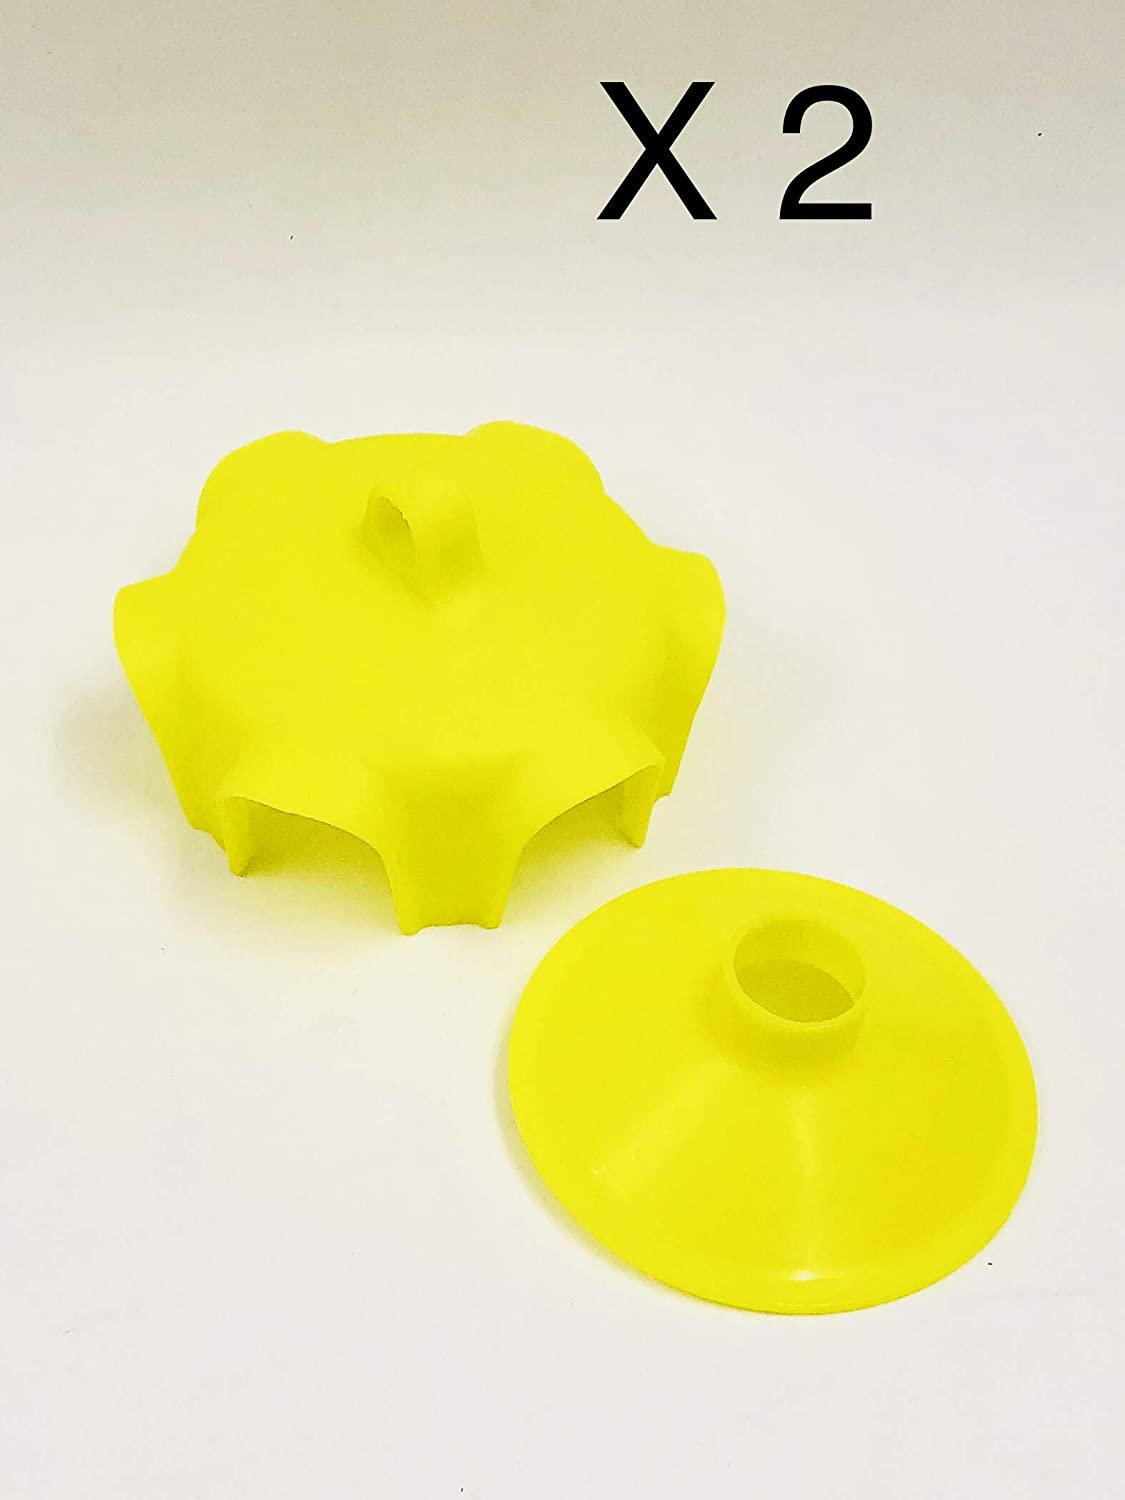 Pack of 2 Ecological Wasp Traps - Made in Italy ATTRAPE-GUEPE AND CO